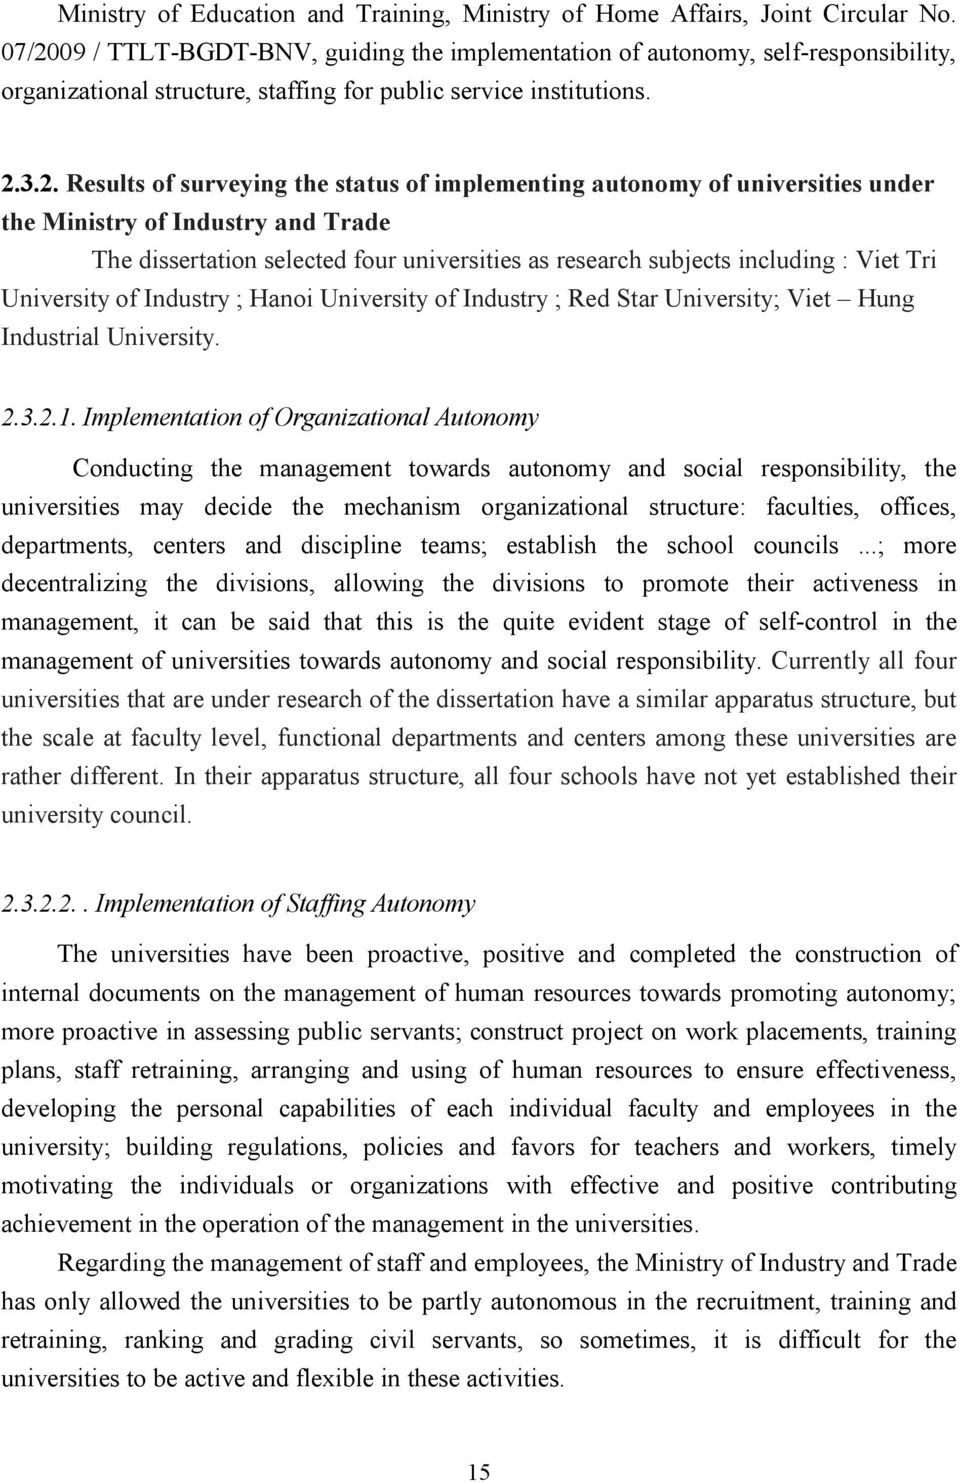 implementing autonomy of universities under the Ministry of Industry and Trade The dissertation selected four universities as research subjects including : Viet Tri University of Industry ; Hanoi